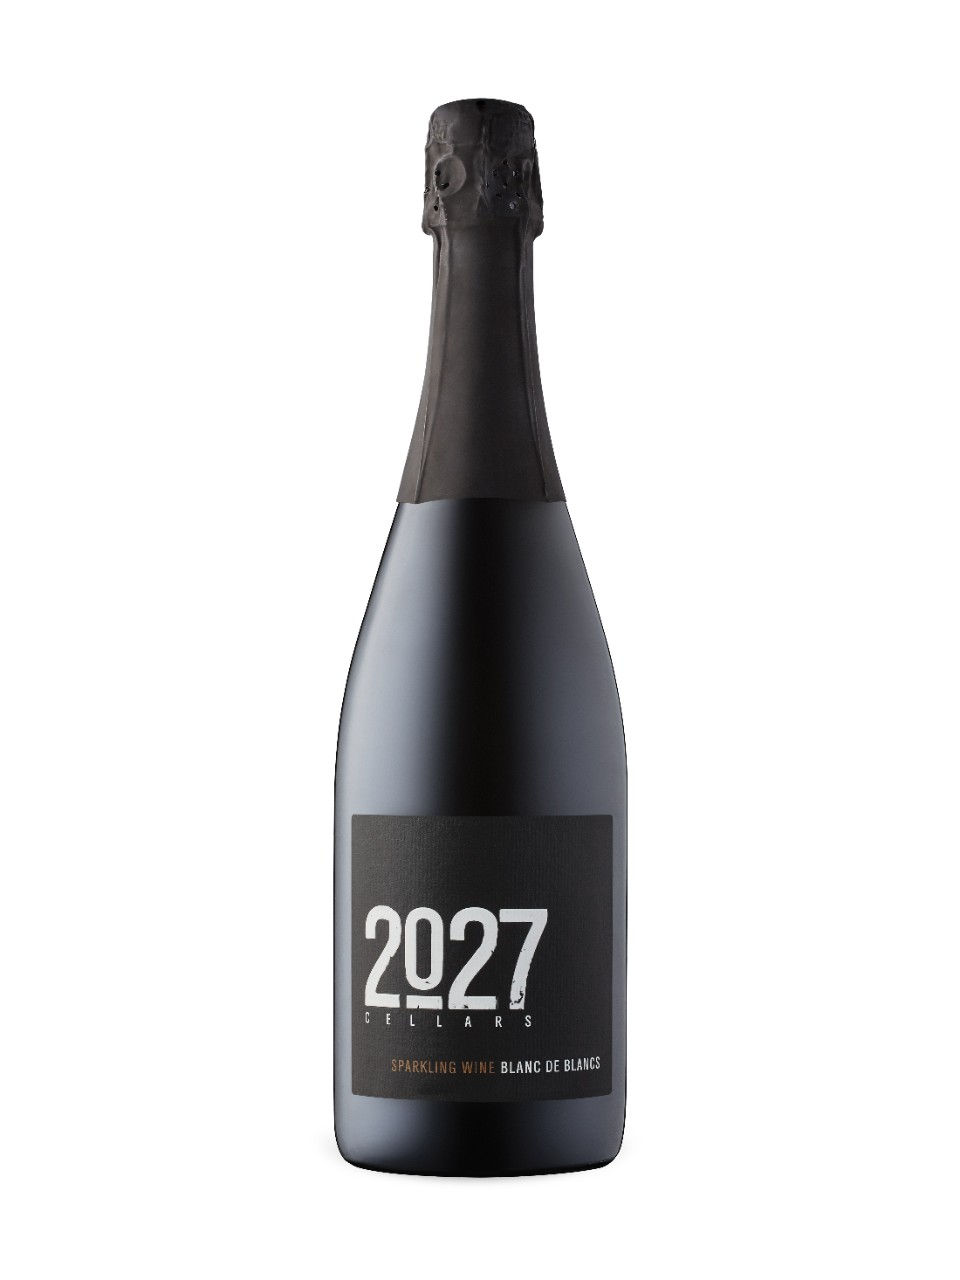 2027 Cellars Queenston Road Vineyard Blanc De Blancs 2013